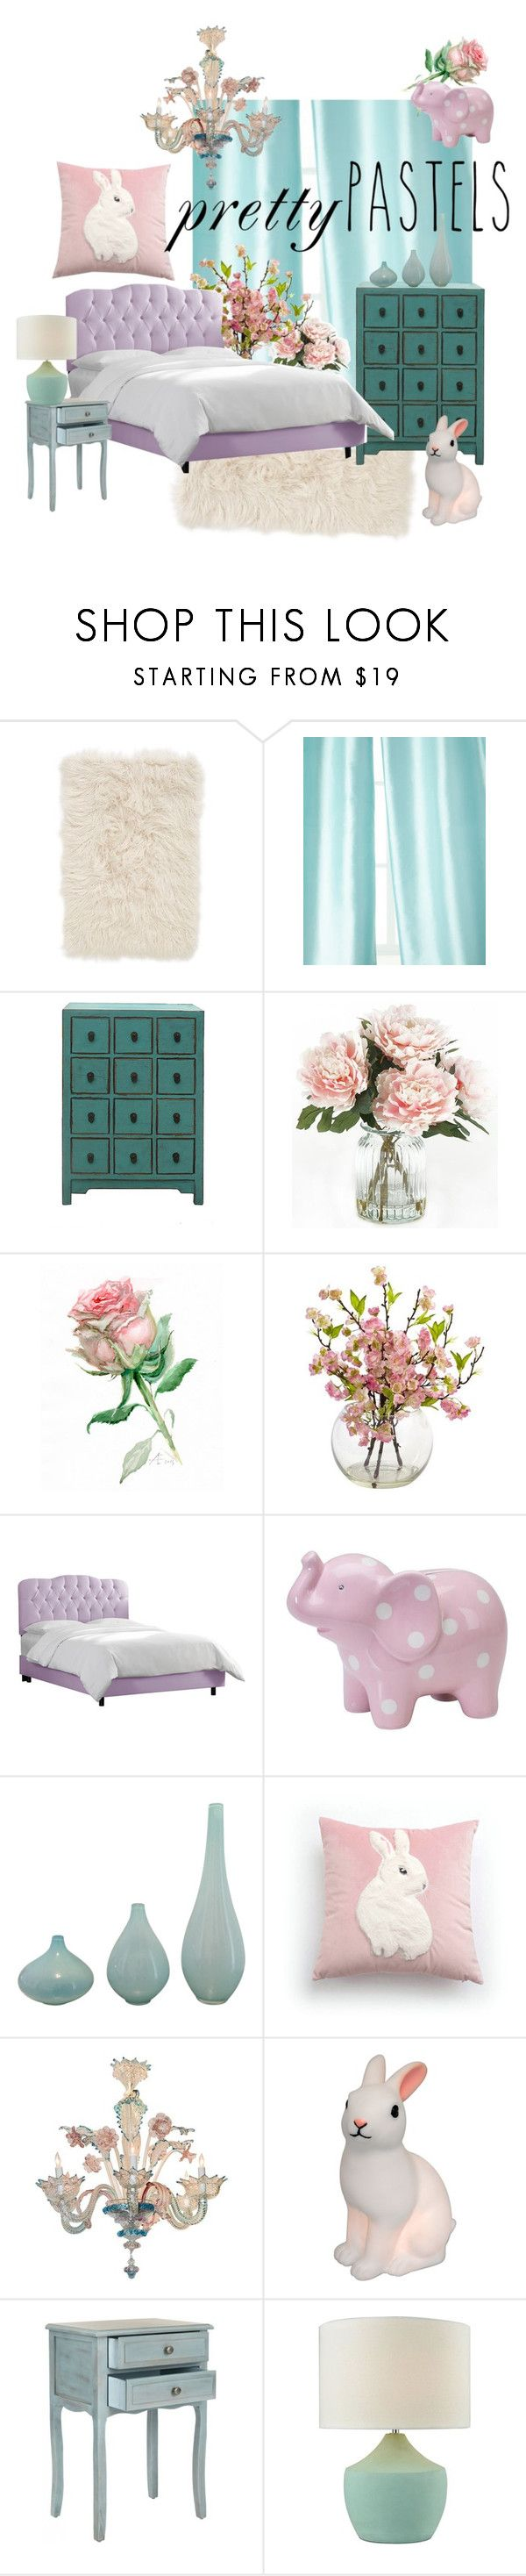 """""""Pastel Home Decor"""" by alina-filika ❤ liked on Polyvore featuring interior, interiors, interior design, home, home decor, interior decorating, Nordstrom, Home Silks, Home Decorators Collection and Skyline"""